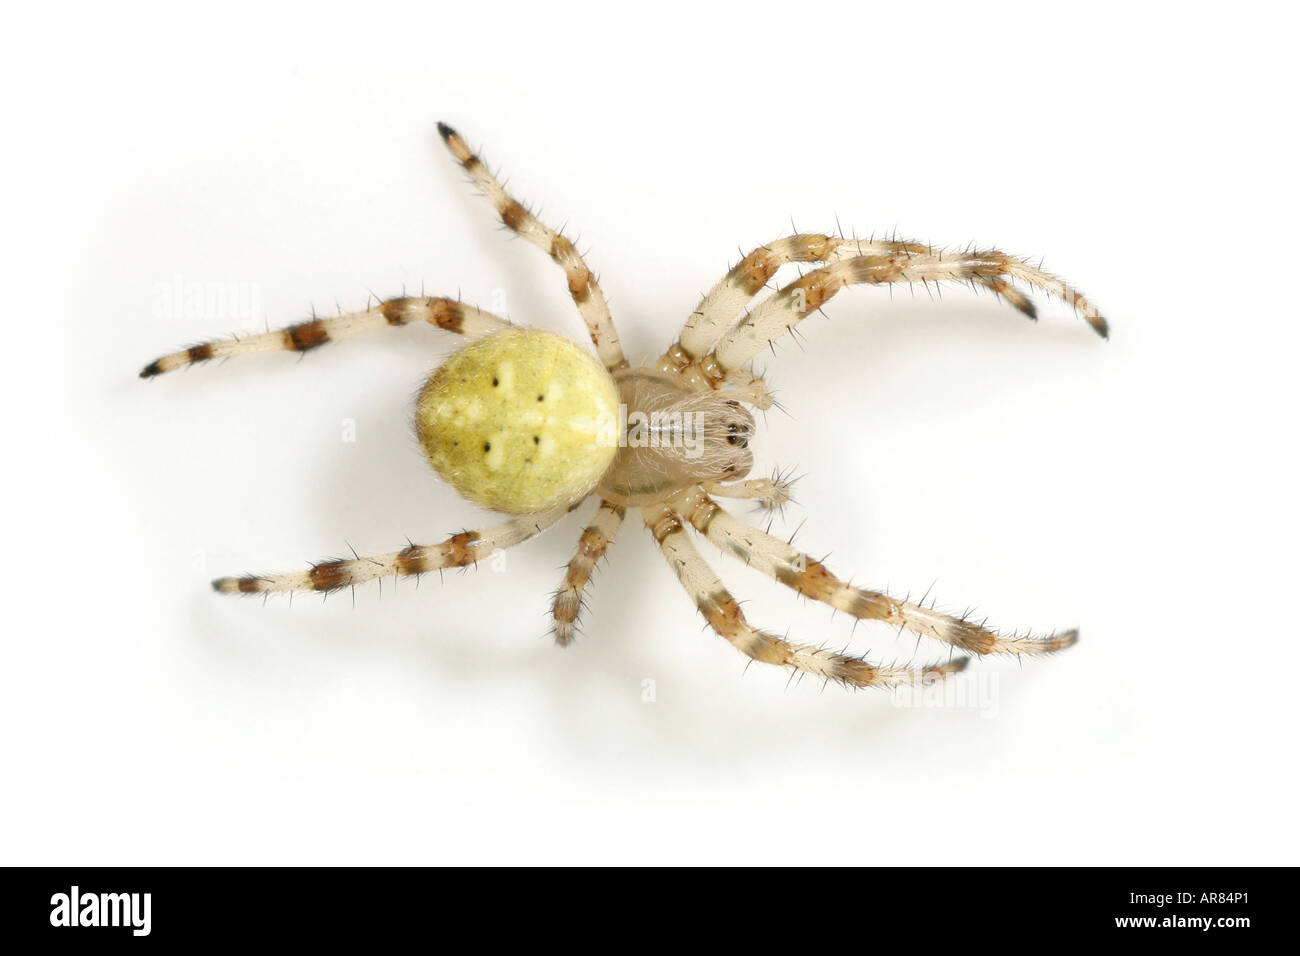 Araneus Quadratus spider on white background Stock Photo